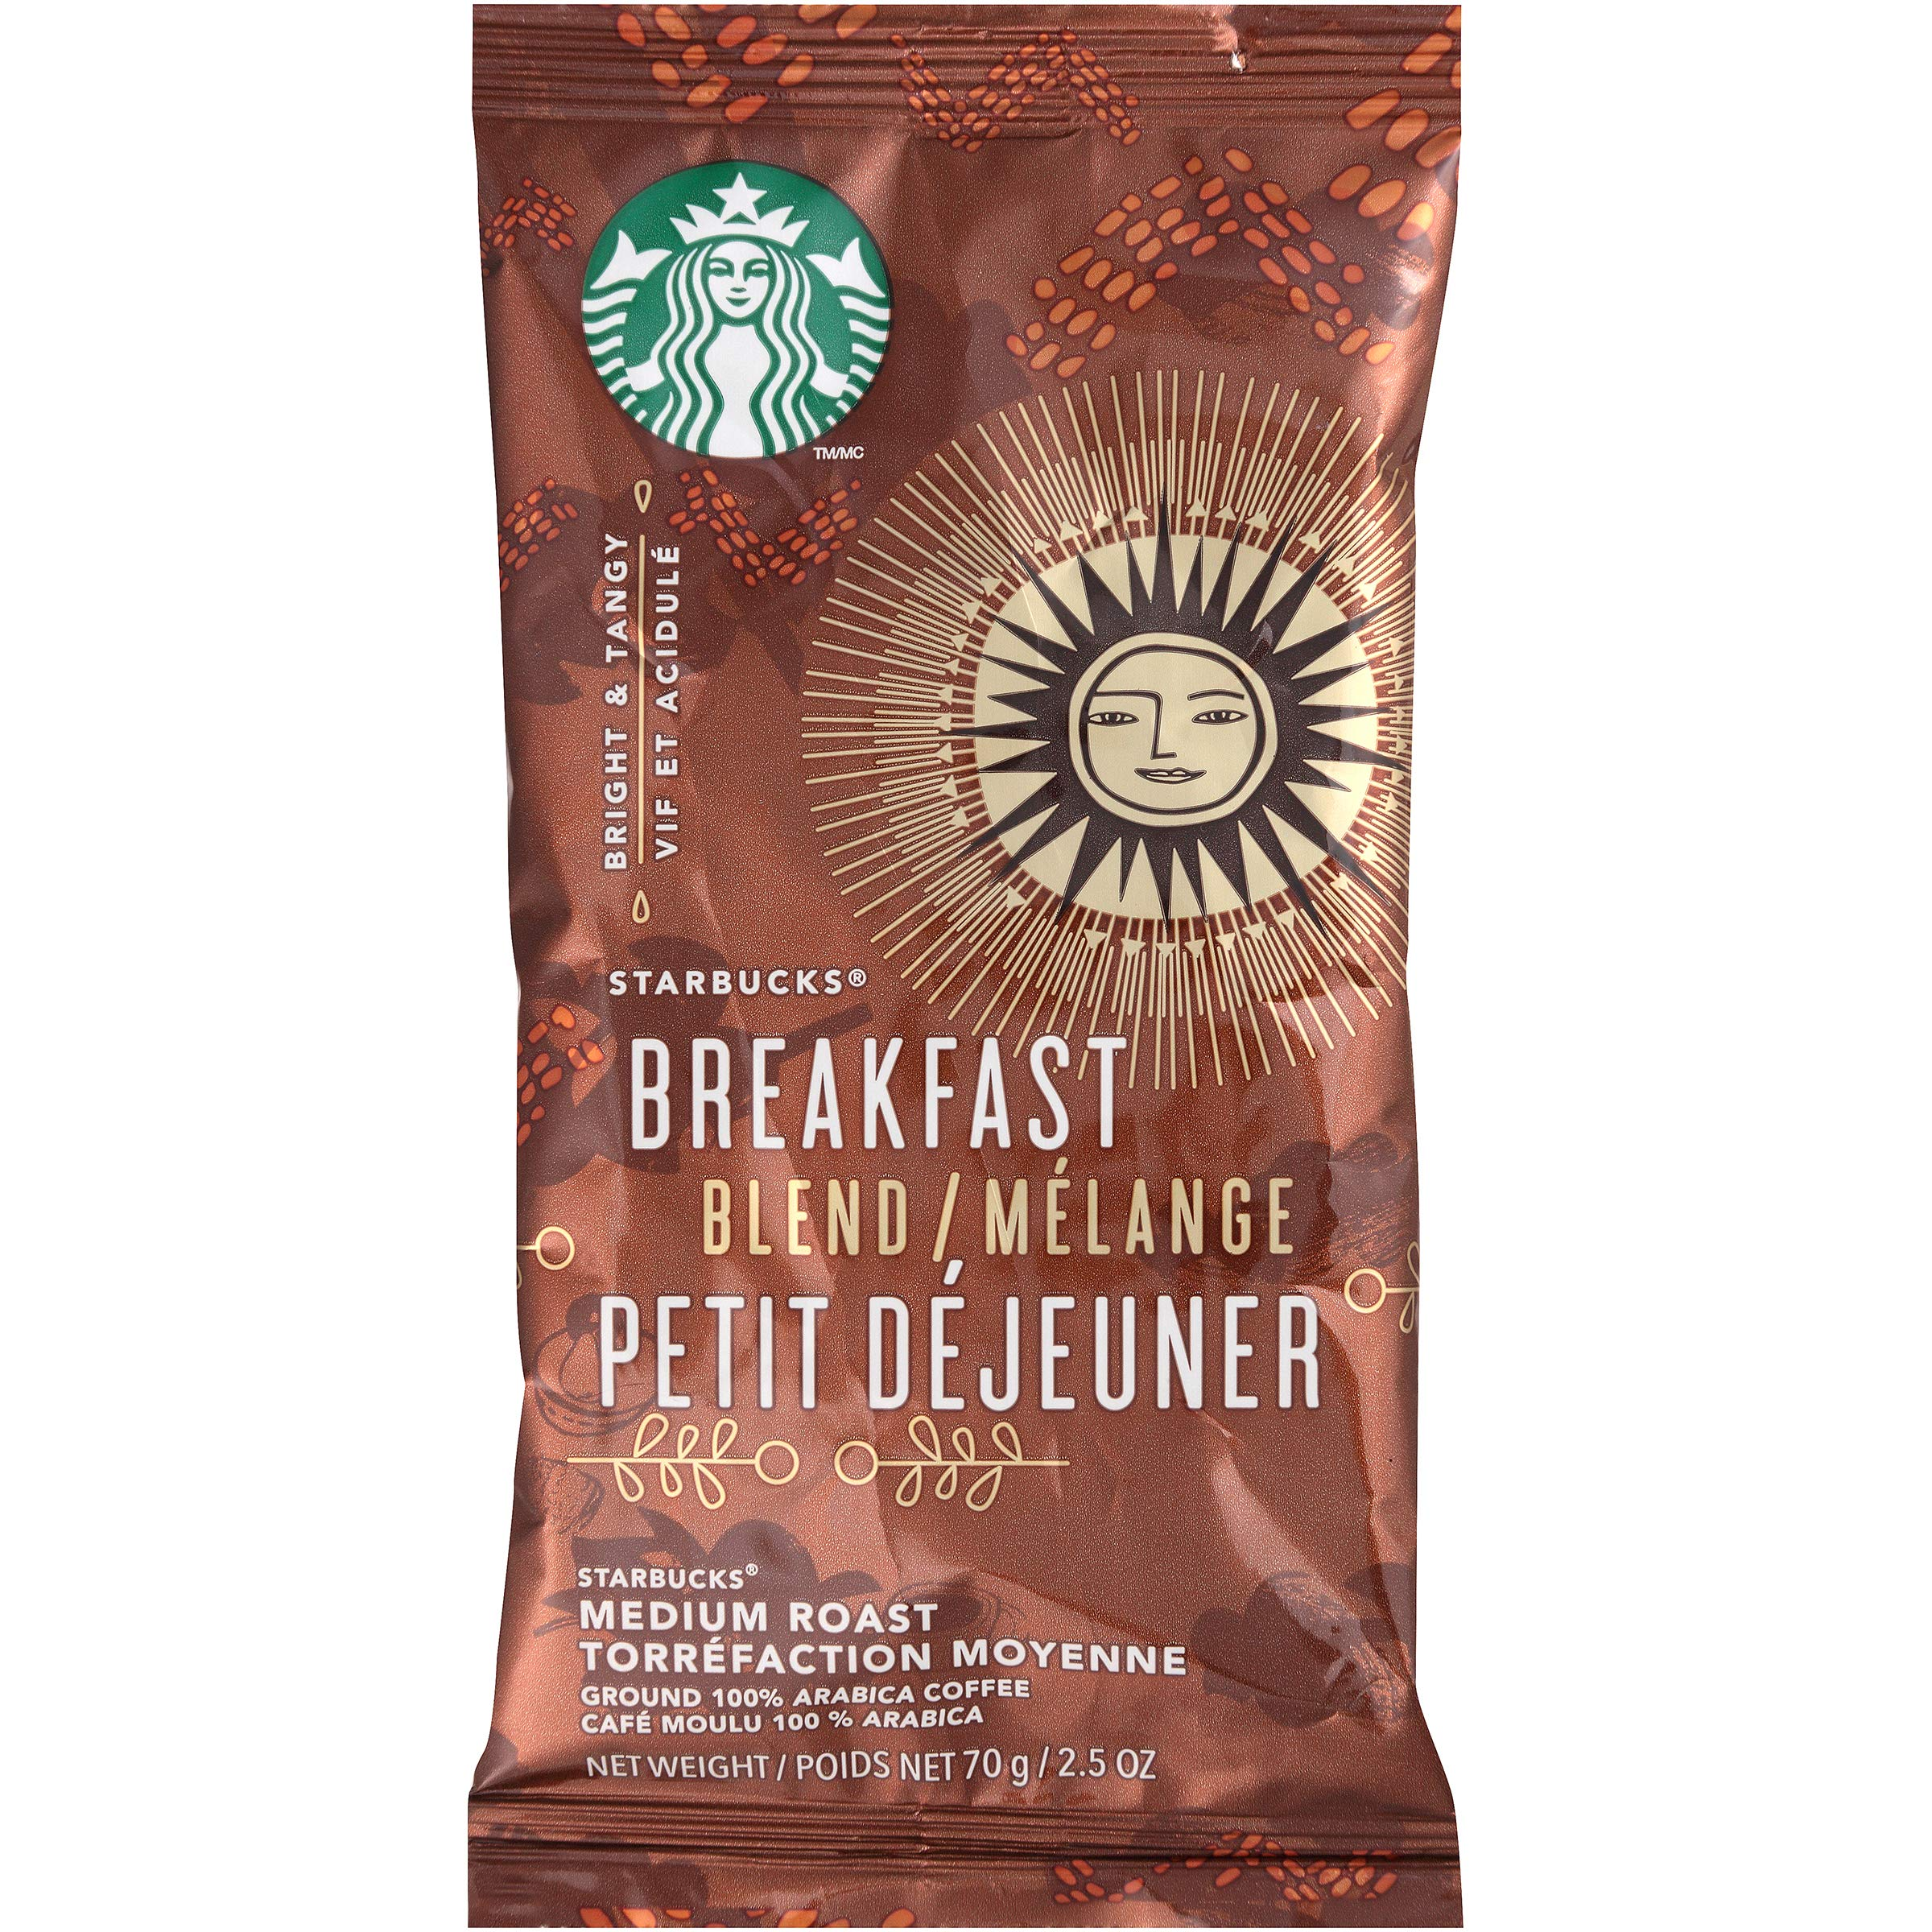 Starbucks Pillow Pack, Breakfast Blend, 72 Individually Wrapped Packs of 2.5 oz. (360 total oz.)